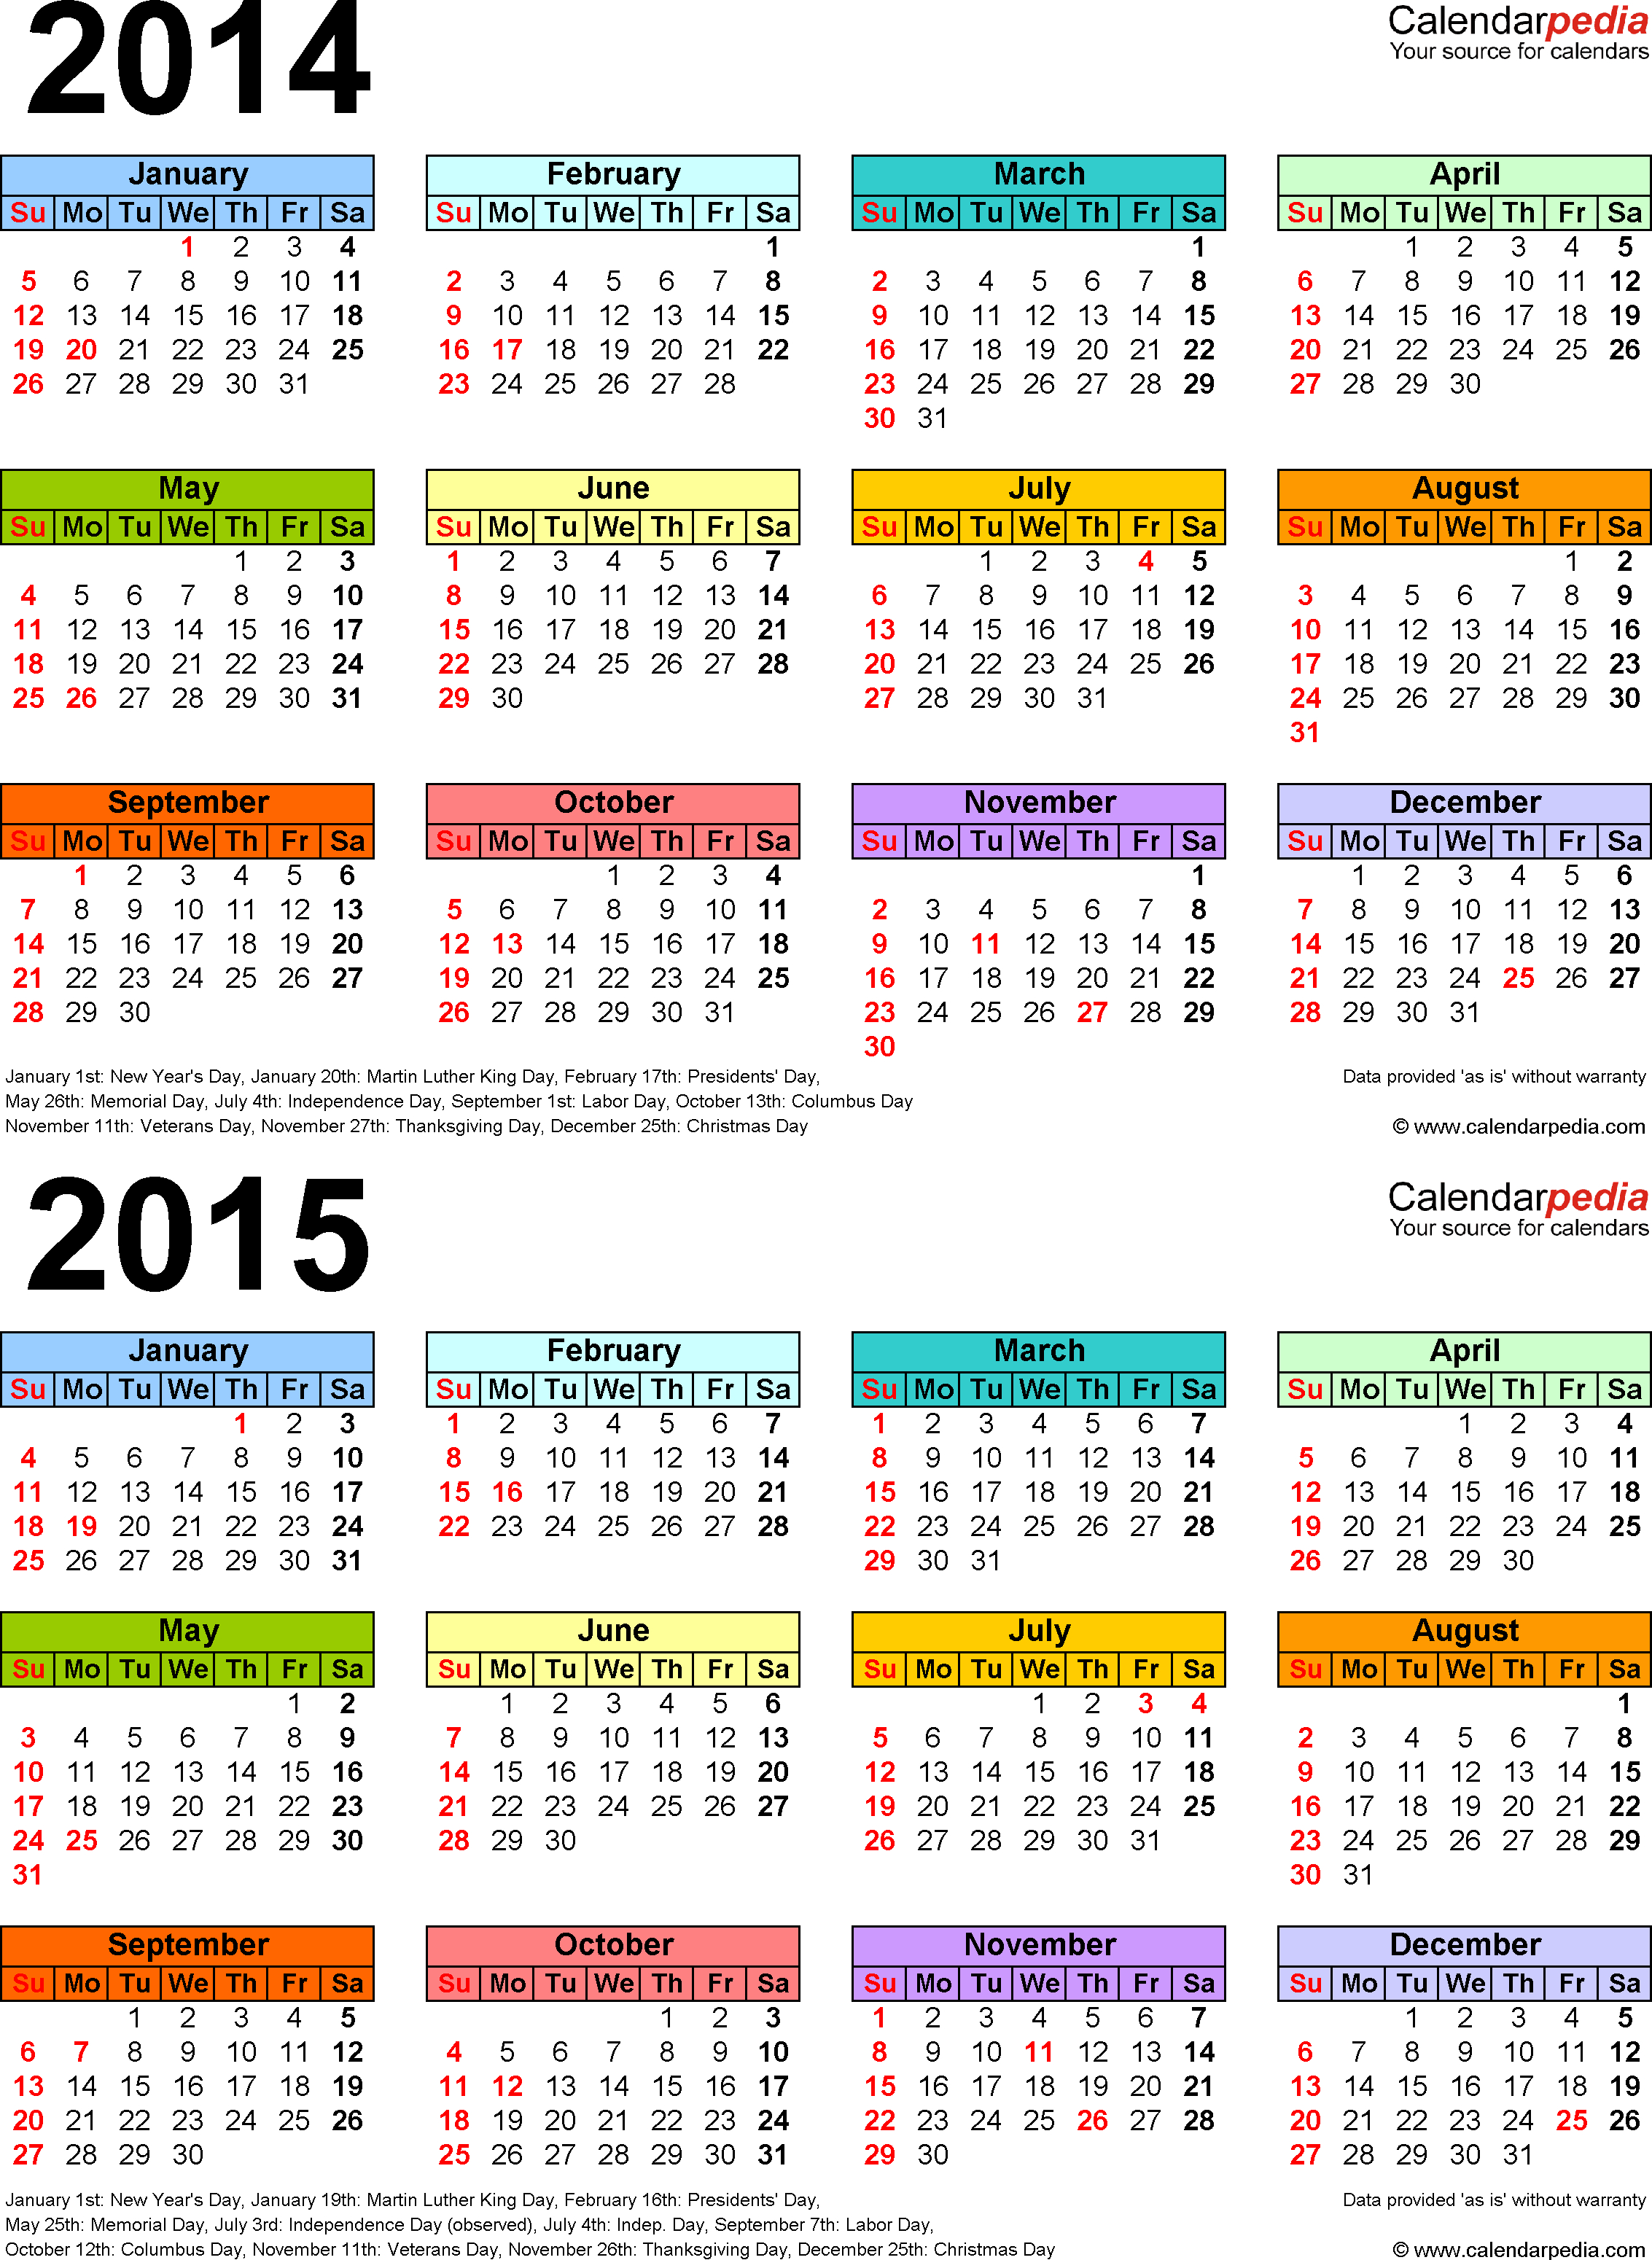 Ataglance Calendar 2014  Yearly Calendar 2014 in Calendar 2014 Printable